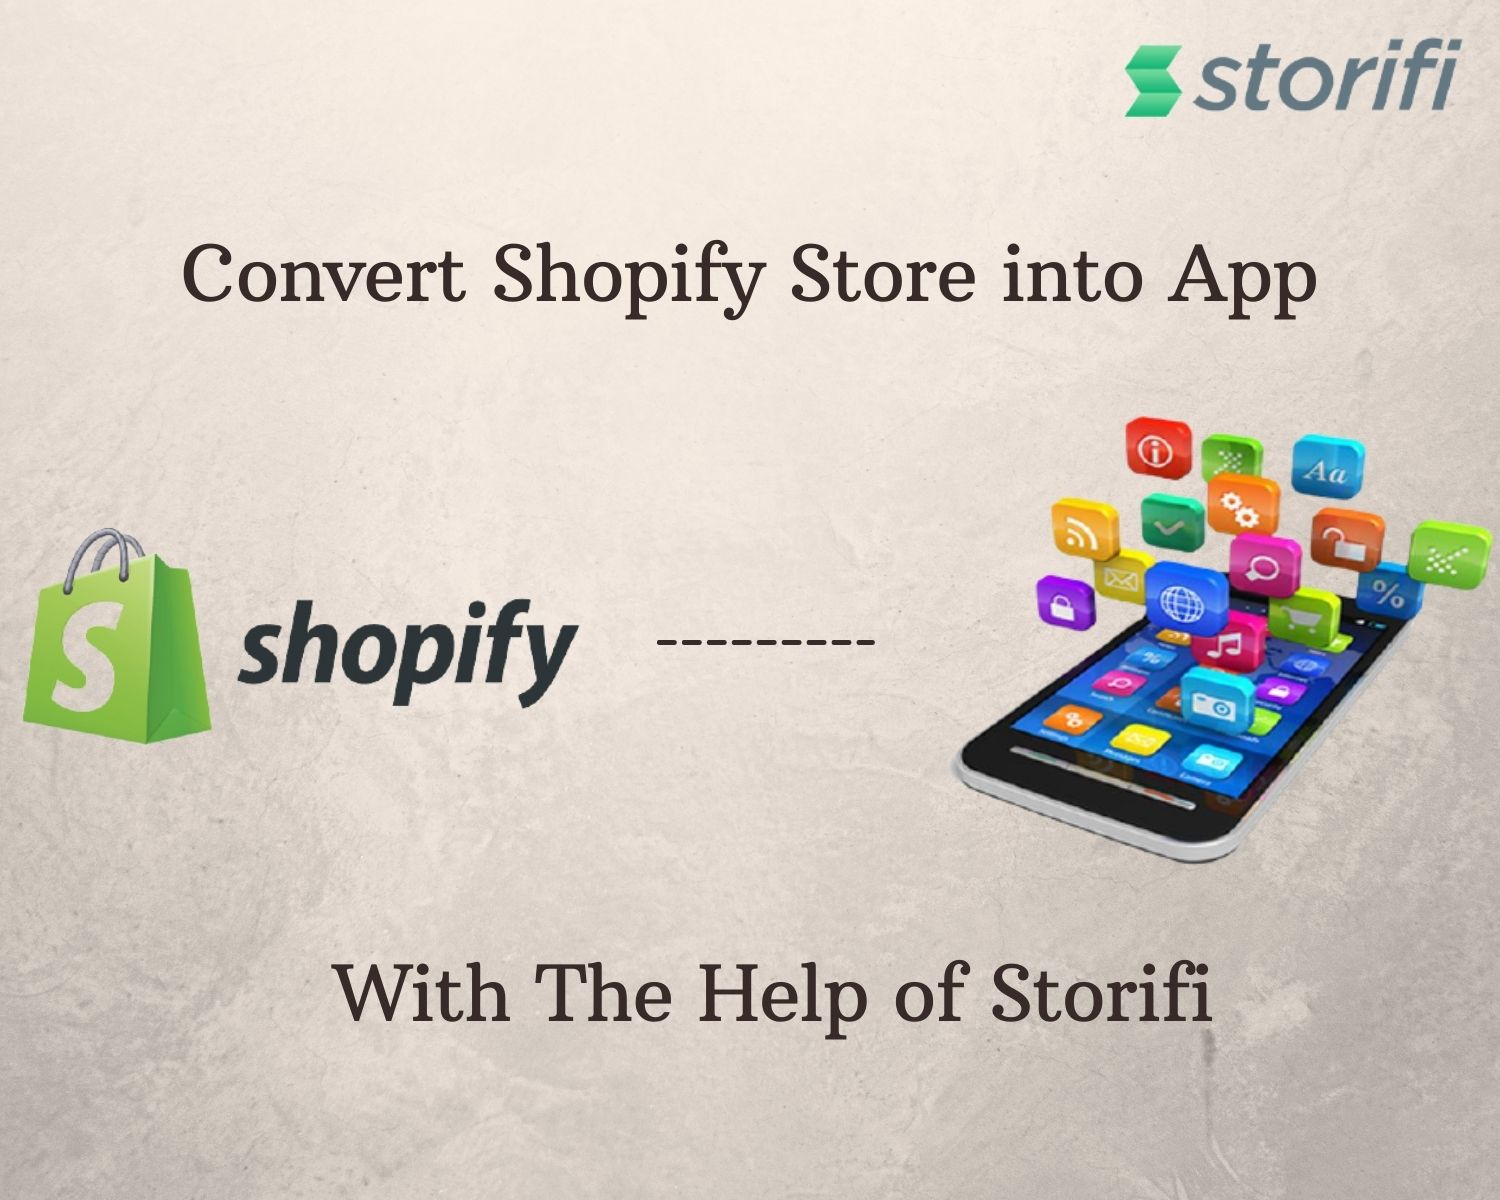 Convert Shopify Store into App